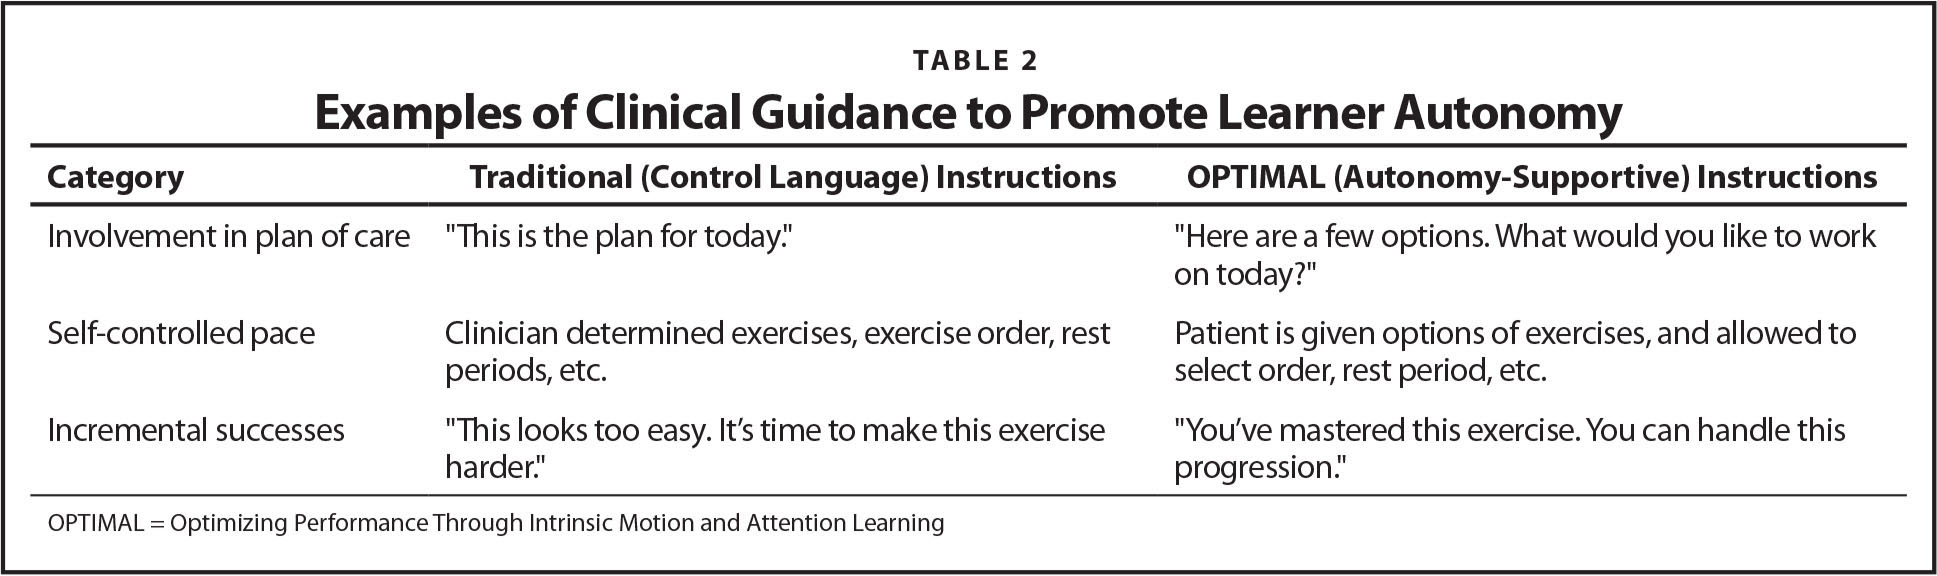 Examples of Clinical Guidance to Promote Learner Autonomy